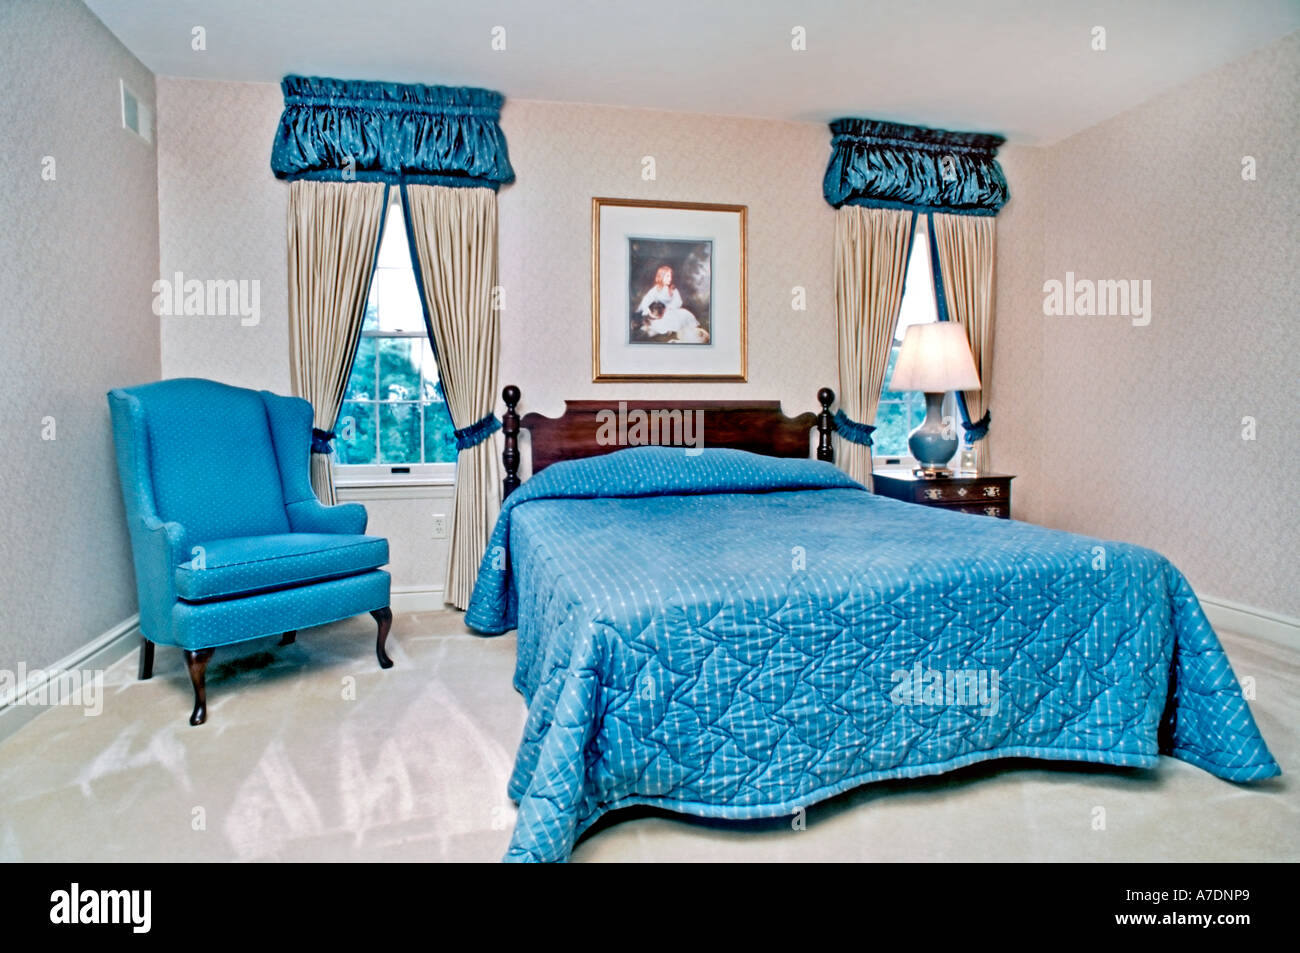 INVESTMENTS, House, USA Luxury Interior Showcase Home Comfortable Master  Bedroom, Interior Design, King Size Bed